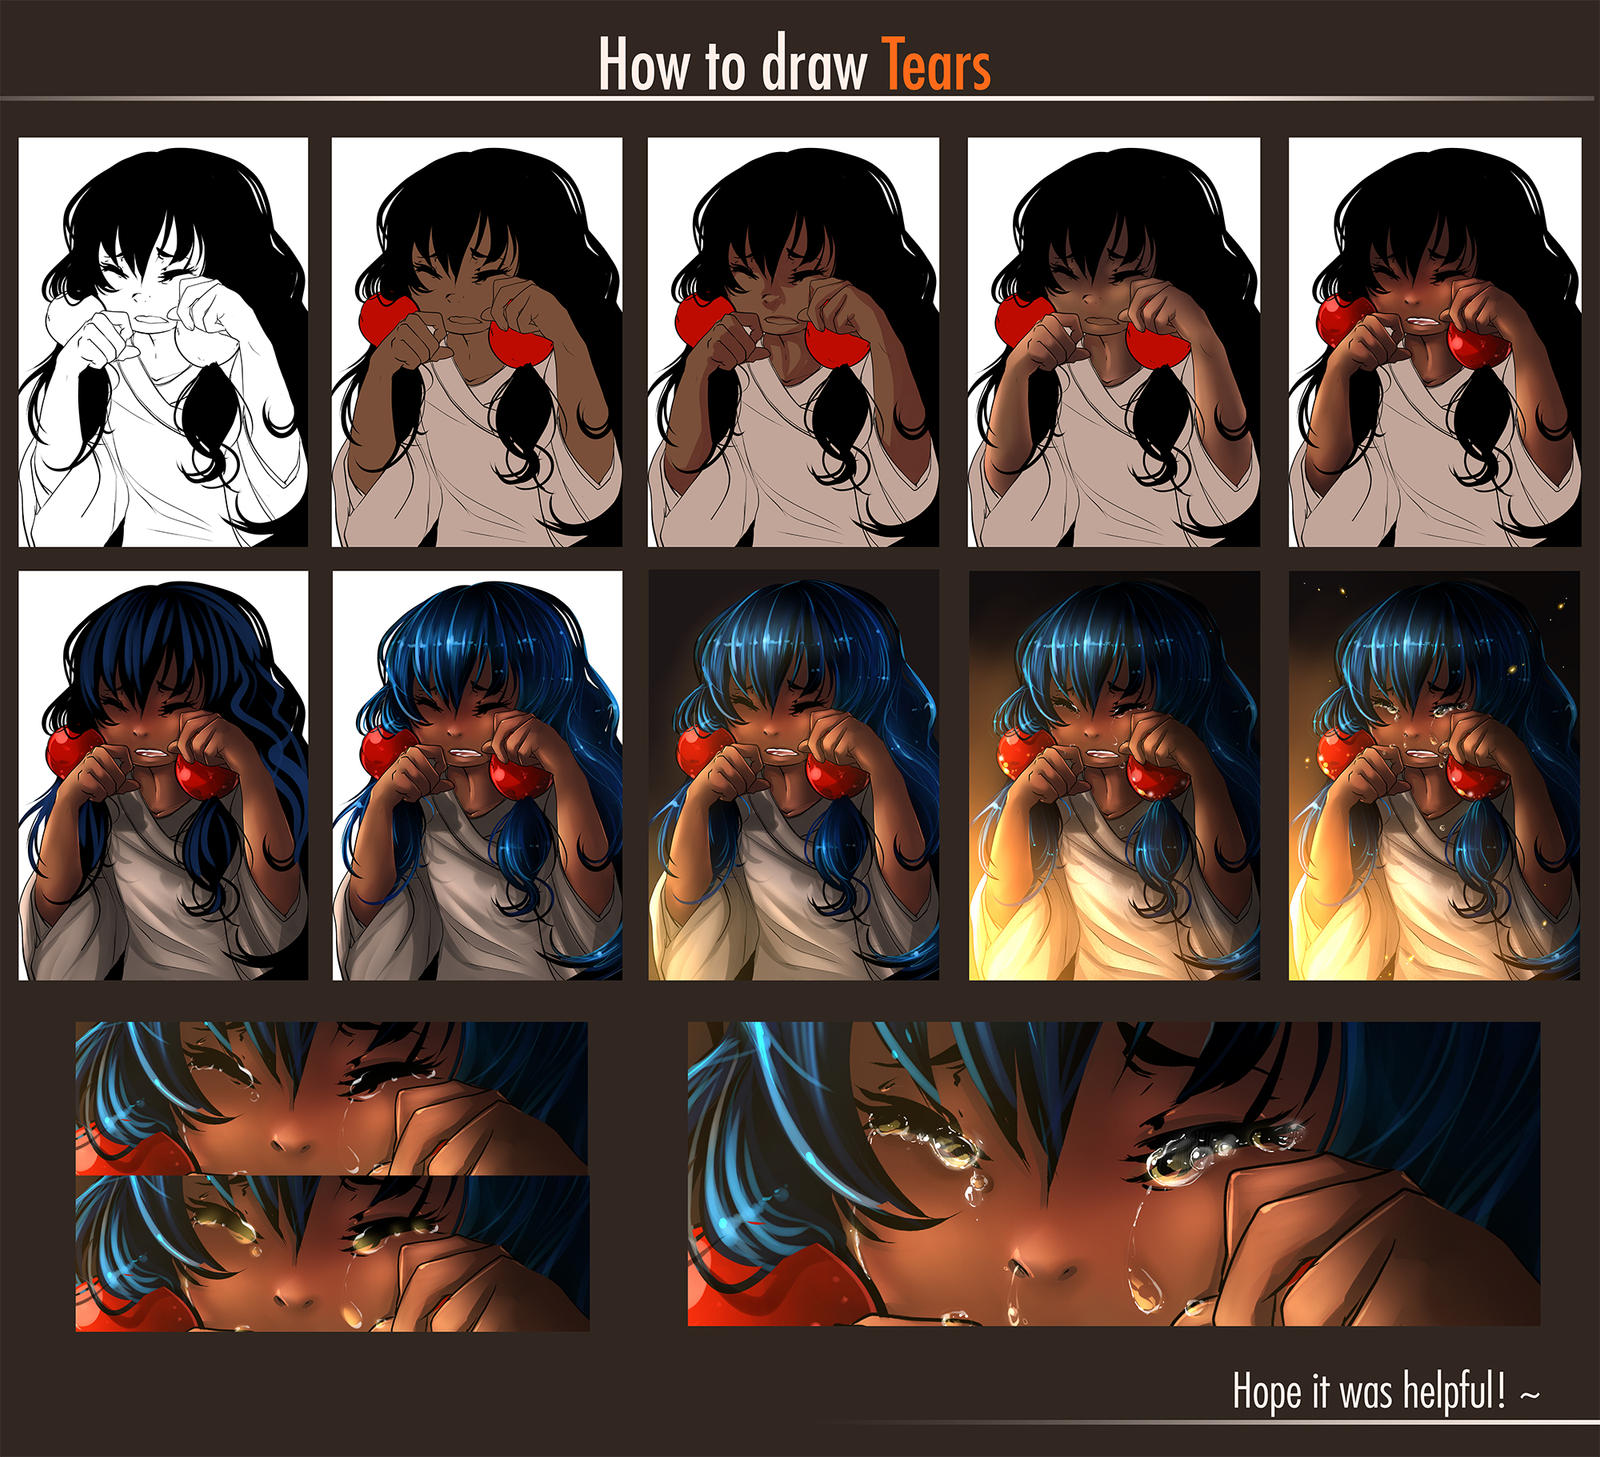 How To Draw Tears By Yokufo On DeviantArt